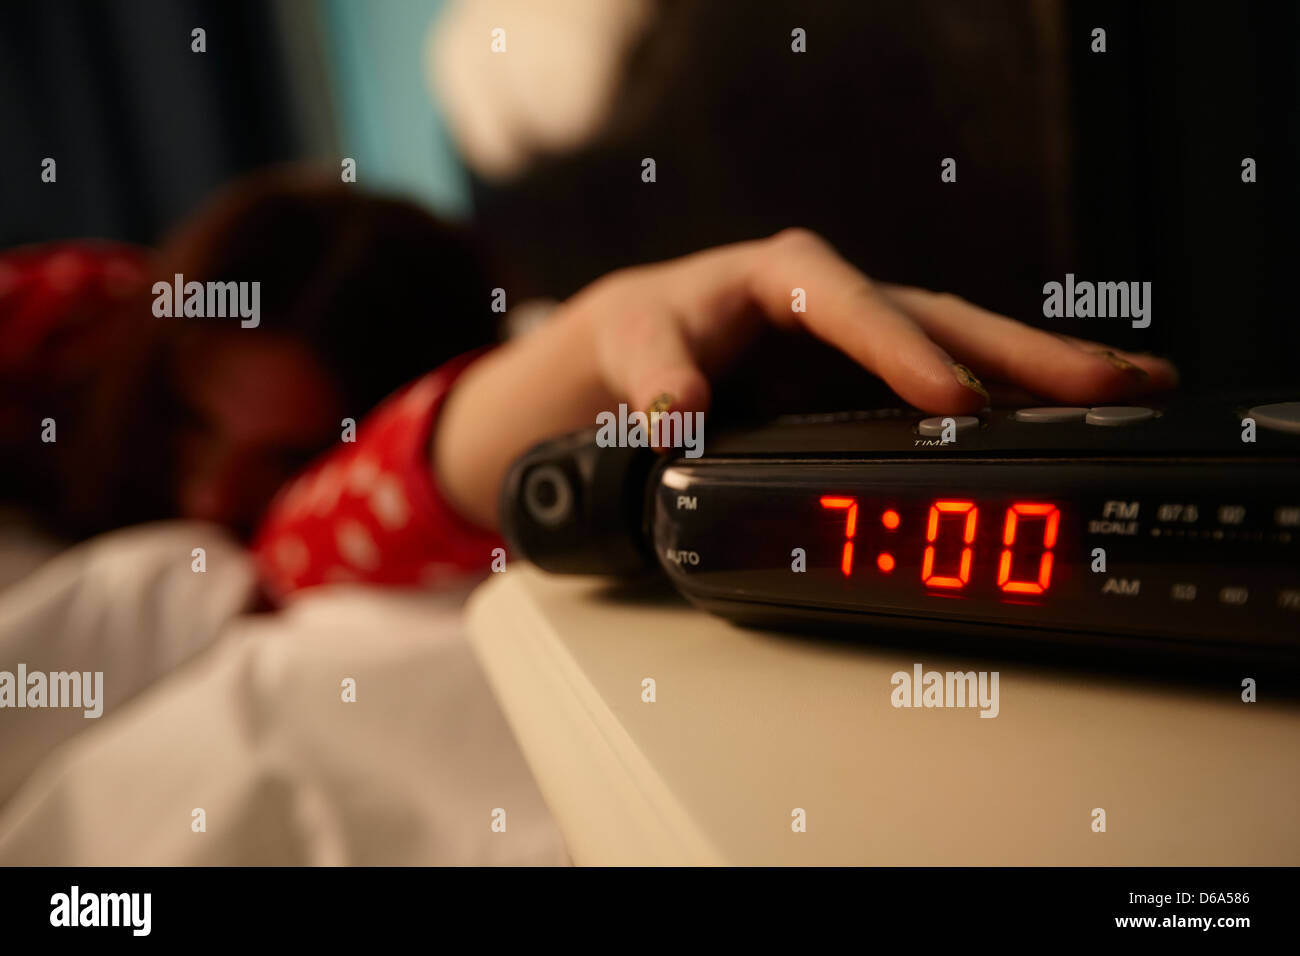 alarm clock early morning with early twenties woman turning off alarm lying in bed in a bedroom - Stock Image